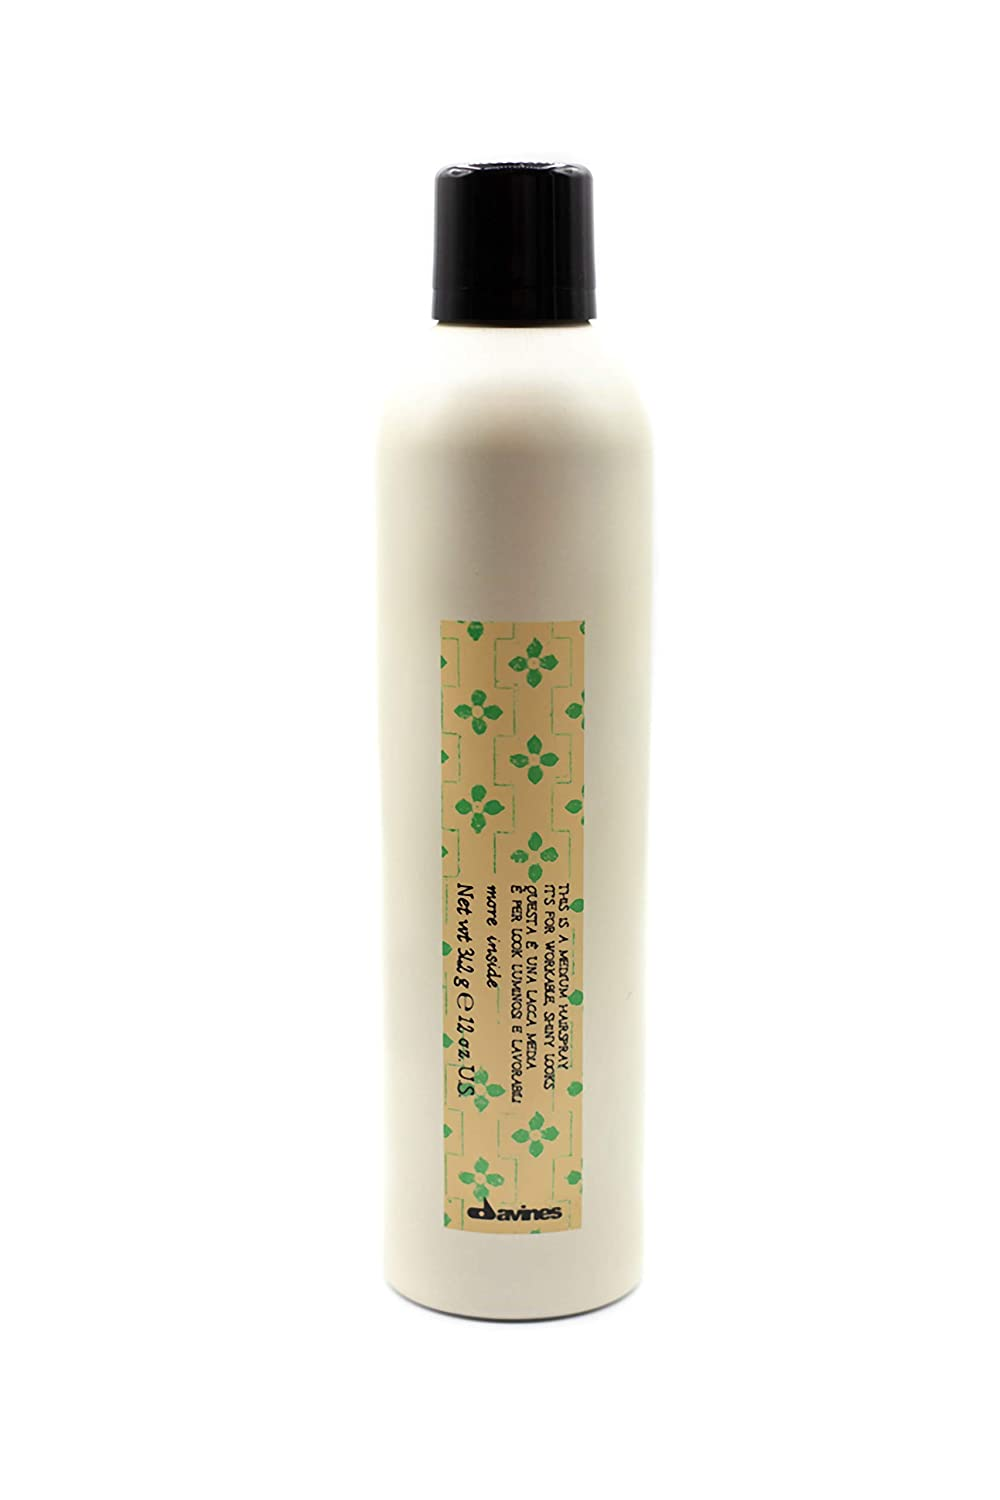 Davines This is a Medium Hairspray | Easy to Brush Out, Medium Hold Hairspray Bottle for all Hair Types | 12 Fl Oz